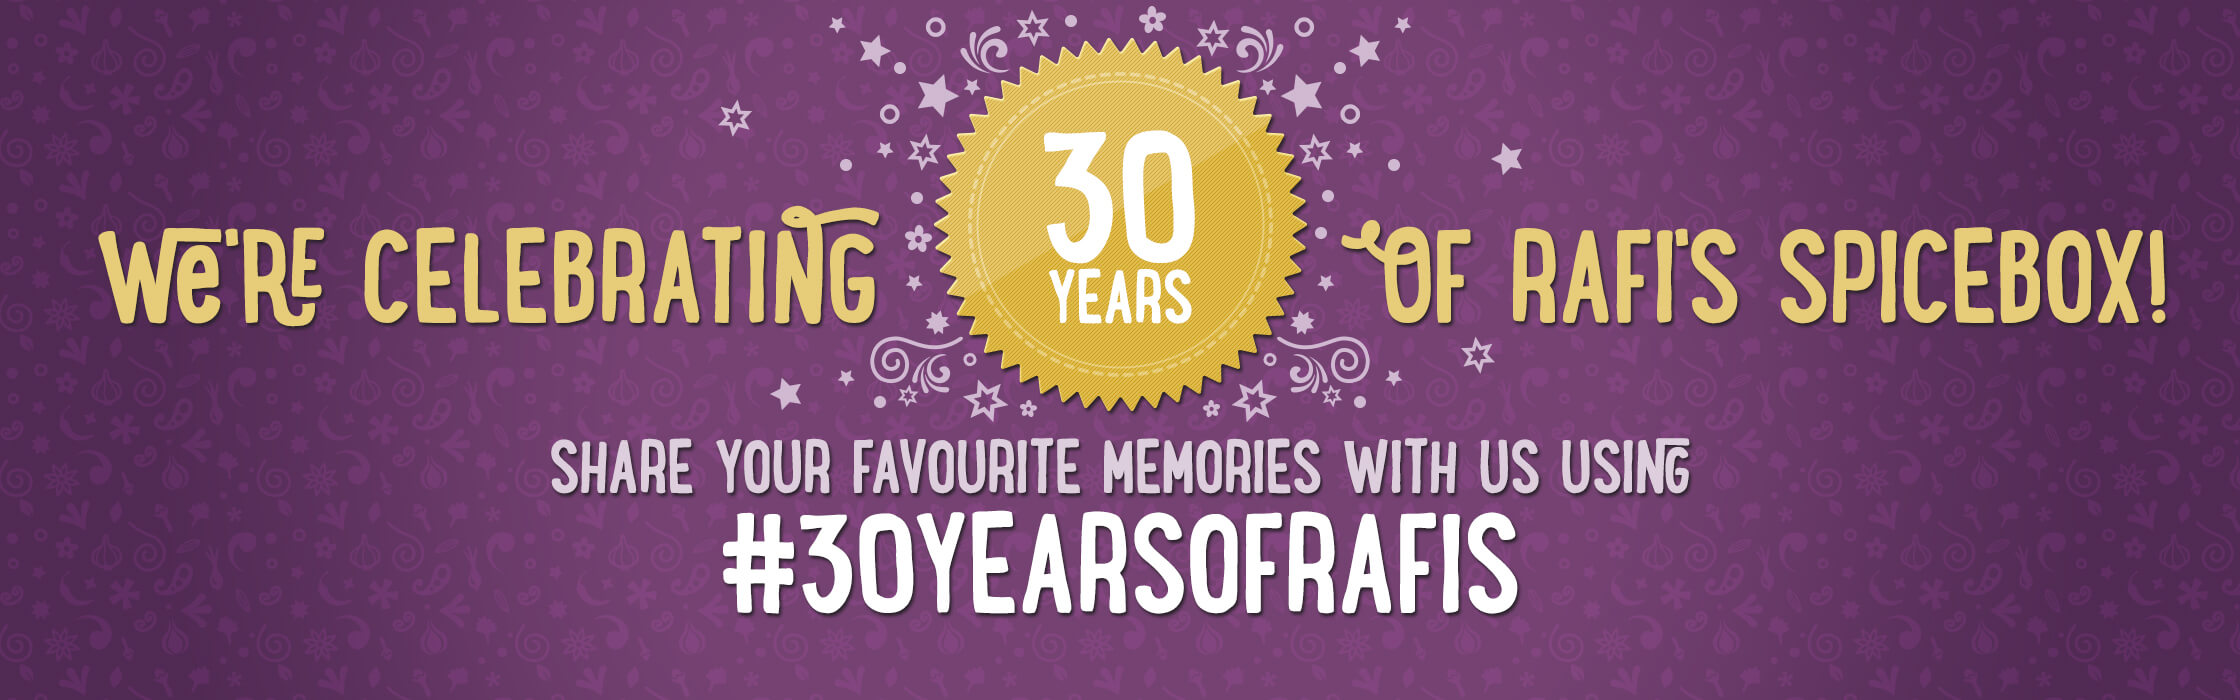 We're celebrating 30 years of Rafi's Spicebox!